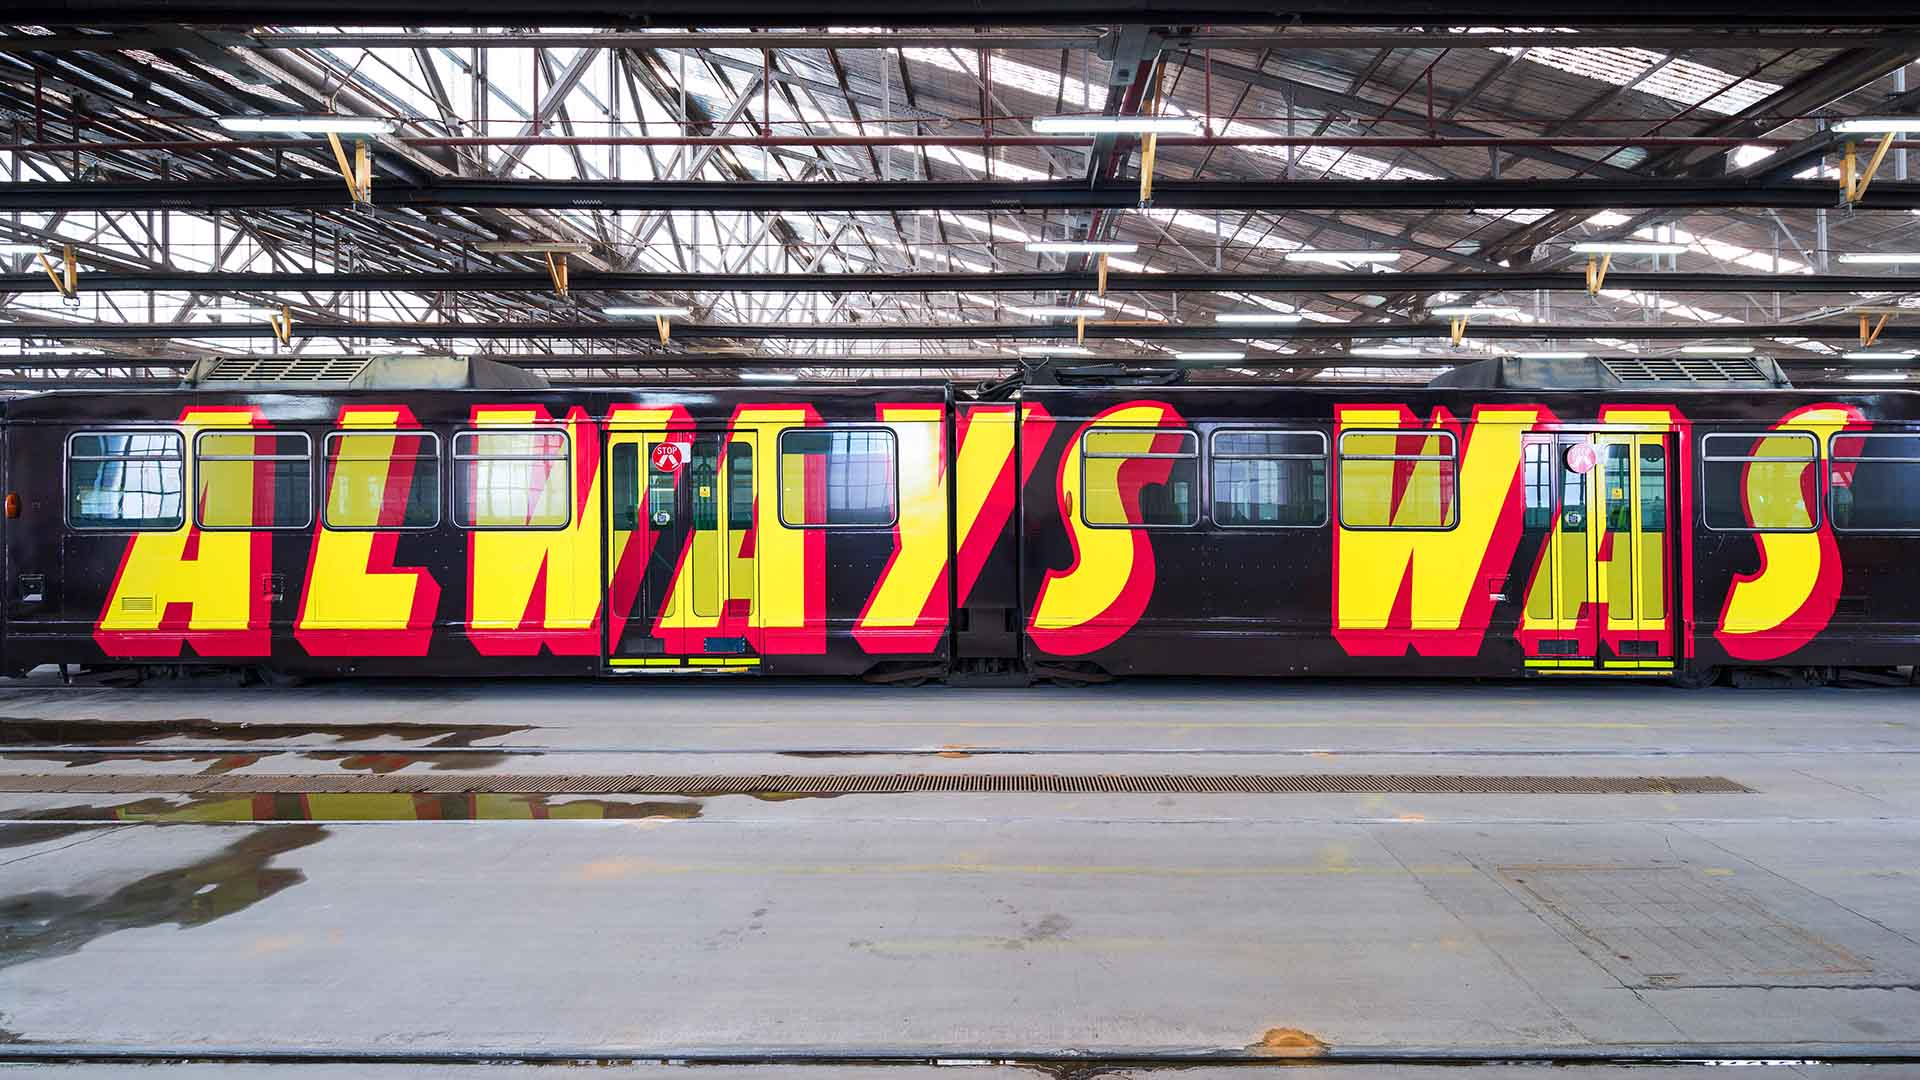 Melbourne's 2021 Art Trams Will Be Designed Entirely by First Nations Artists